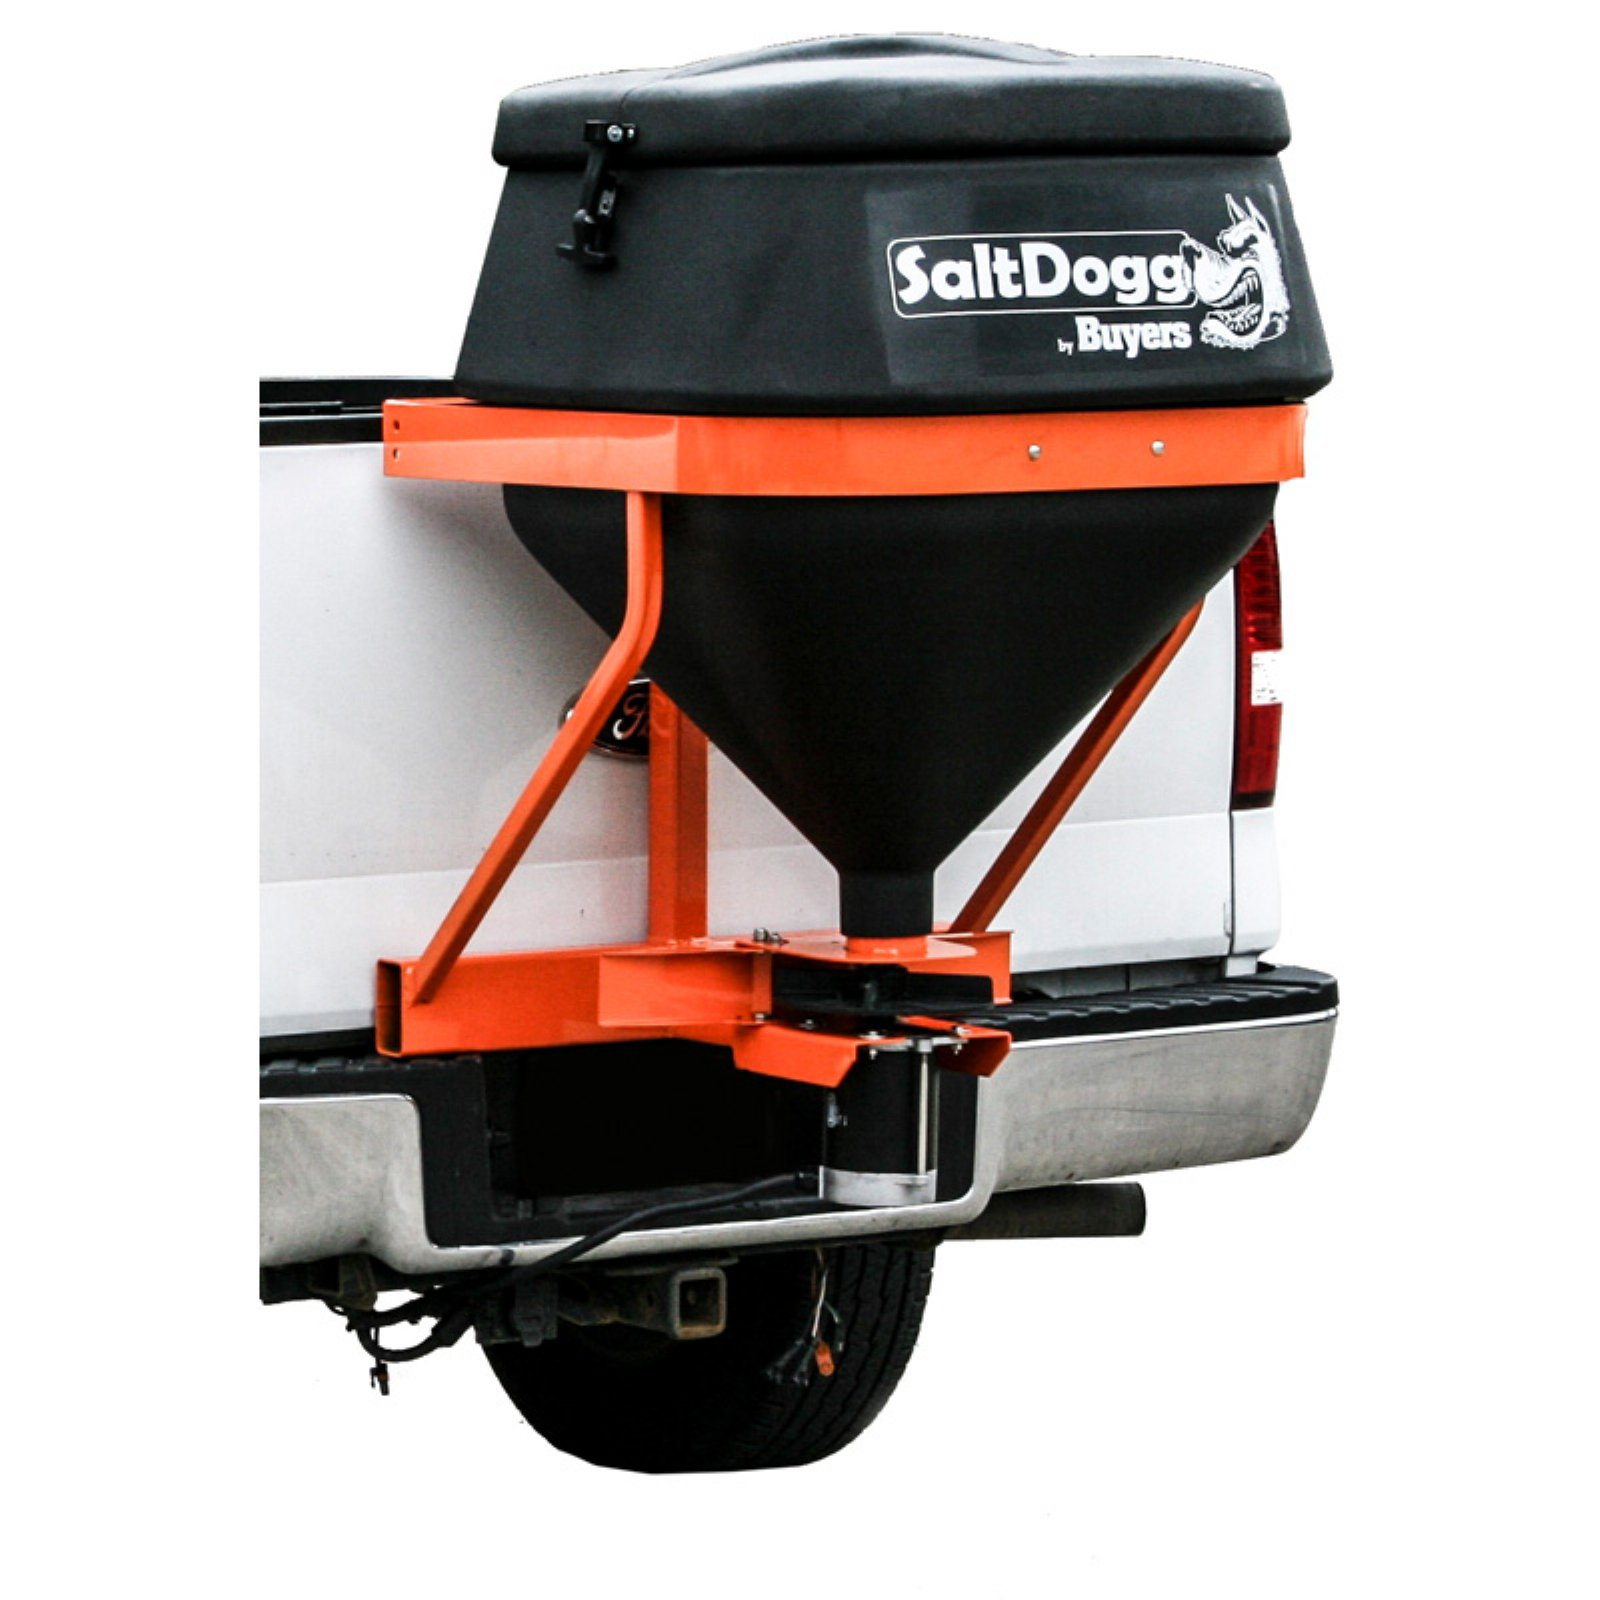 SaltDogg TGS01B Tailgate Hitch Salt Spreader by BUYERS PRODUCTS